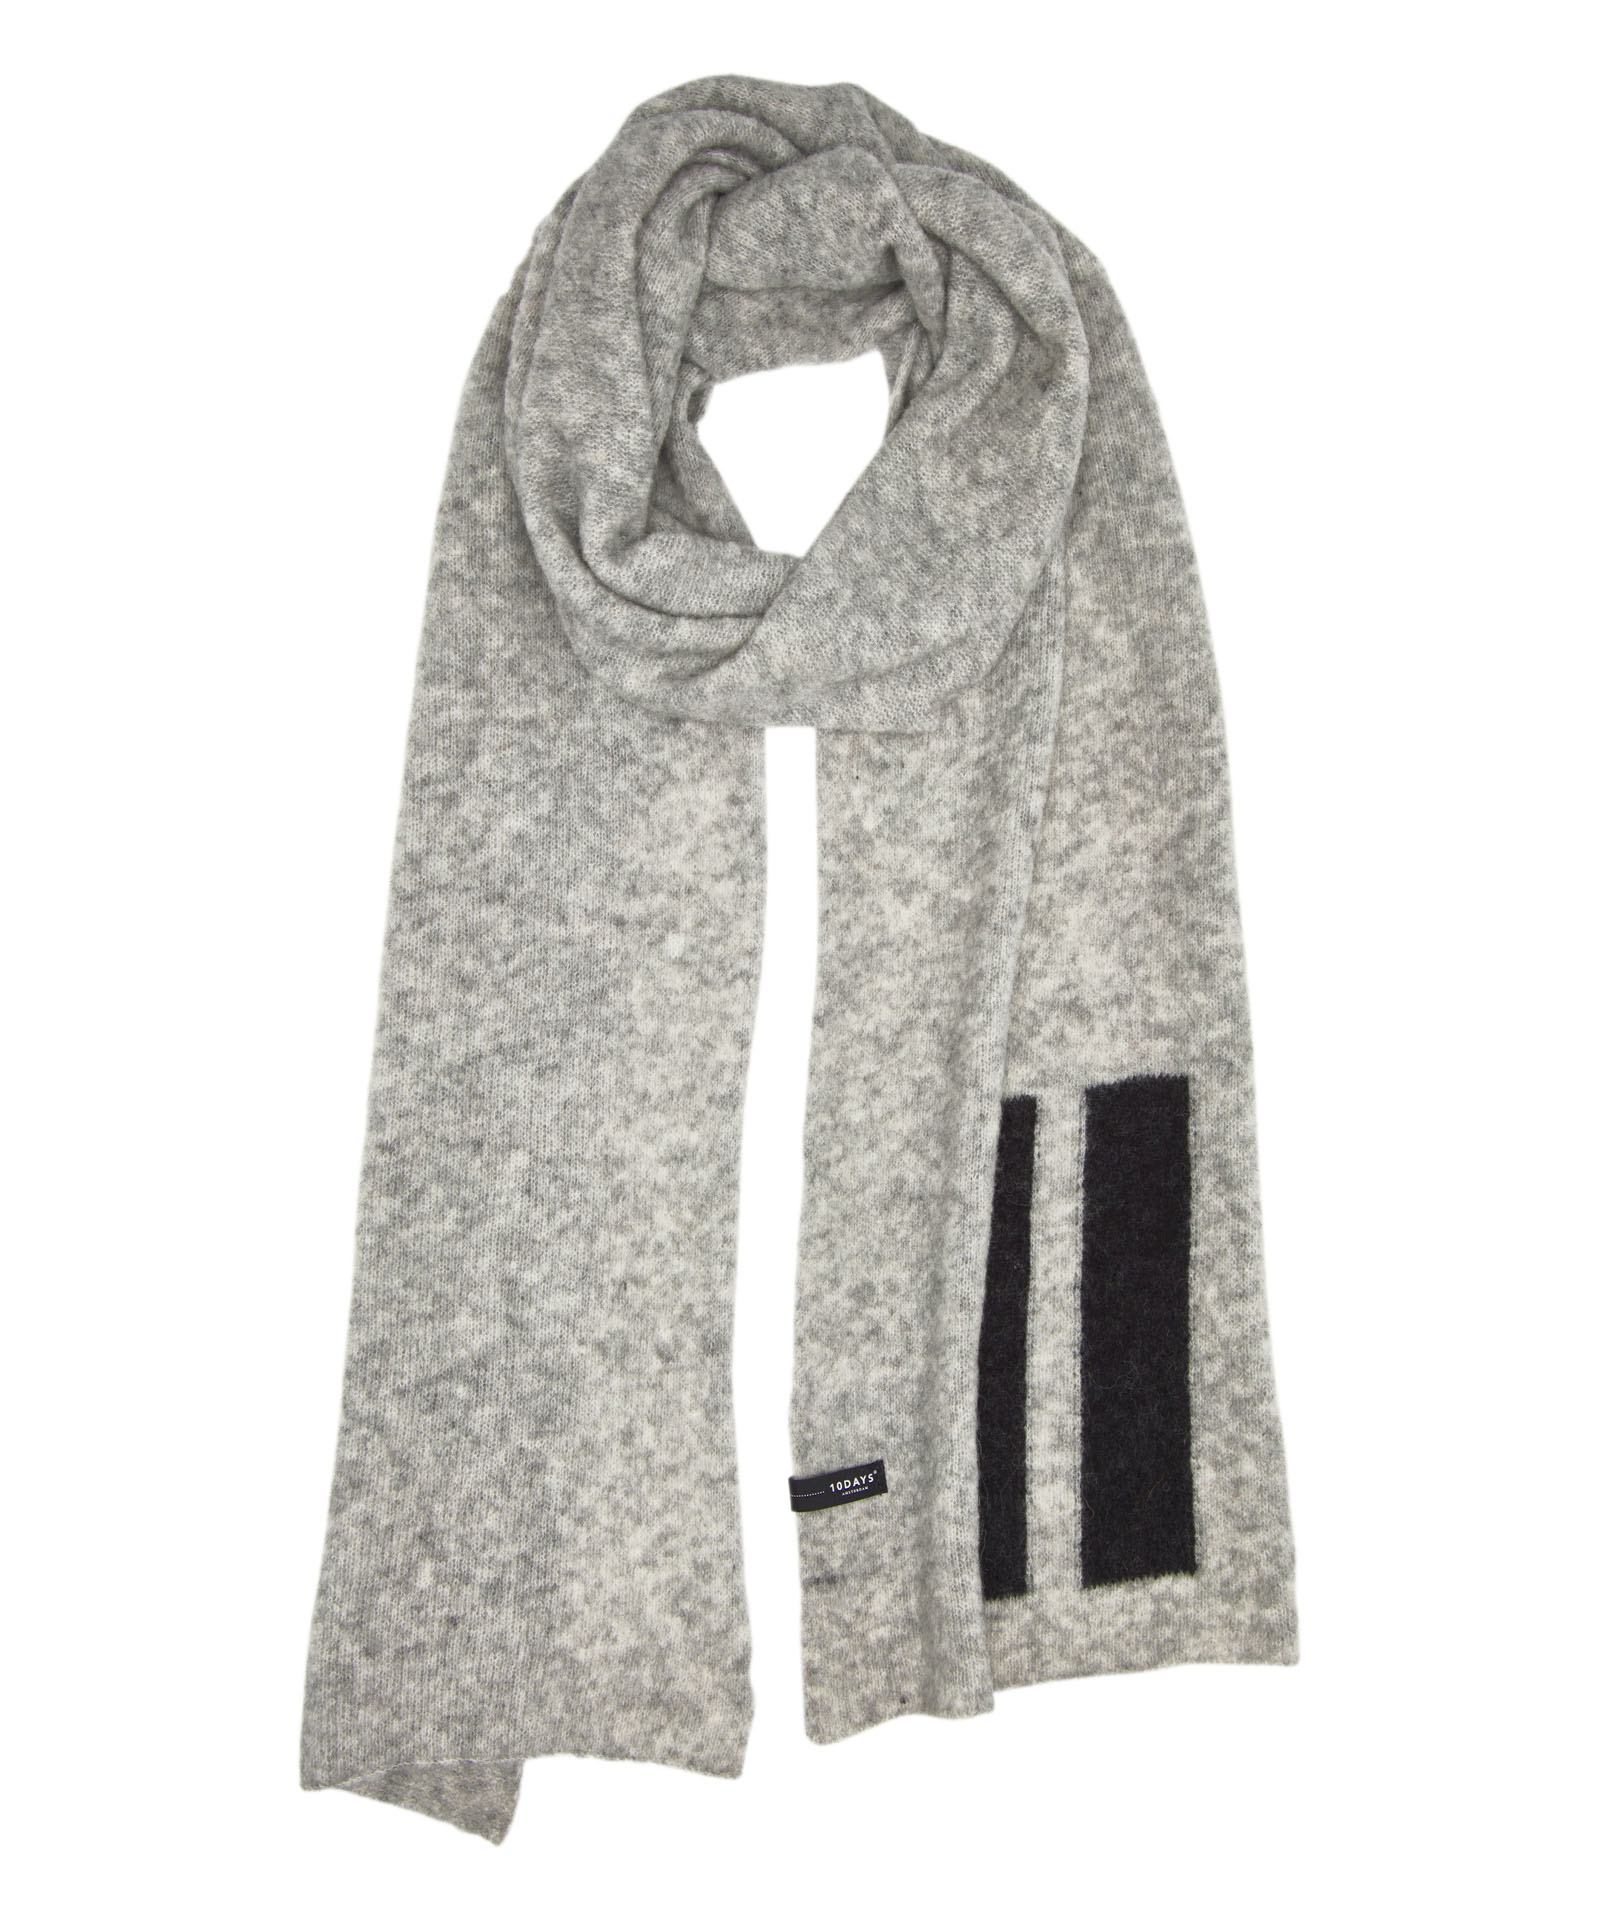 10Days Scarf Antra Melee